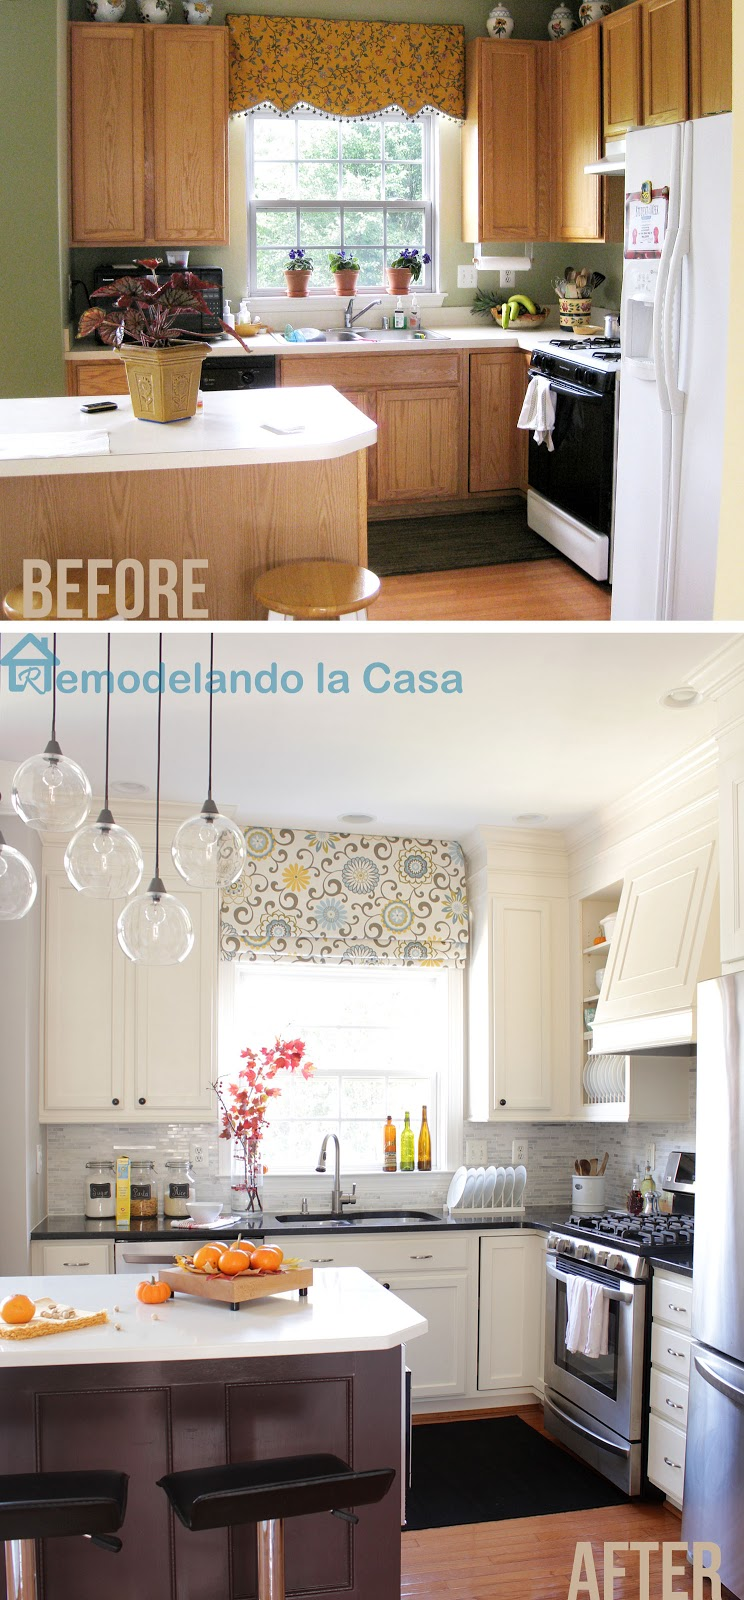 Kitchen makeover remodelando la casa - Kitchen cabinet diy makeover ...